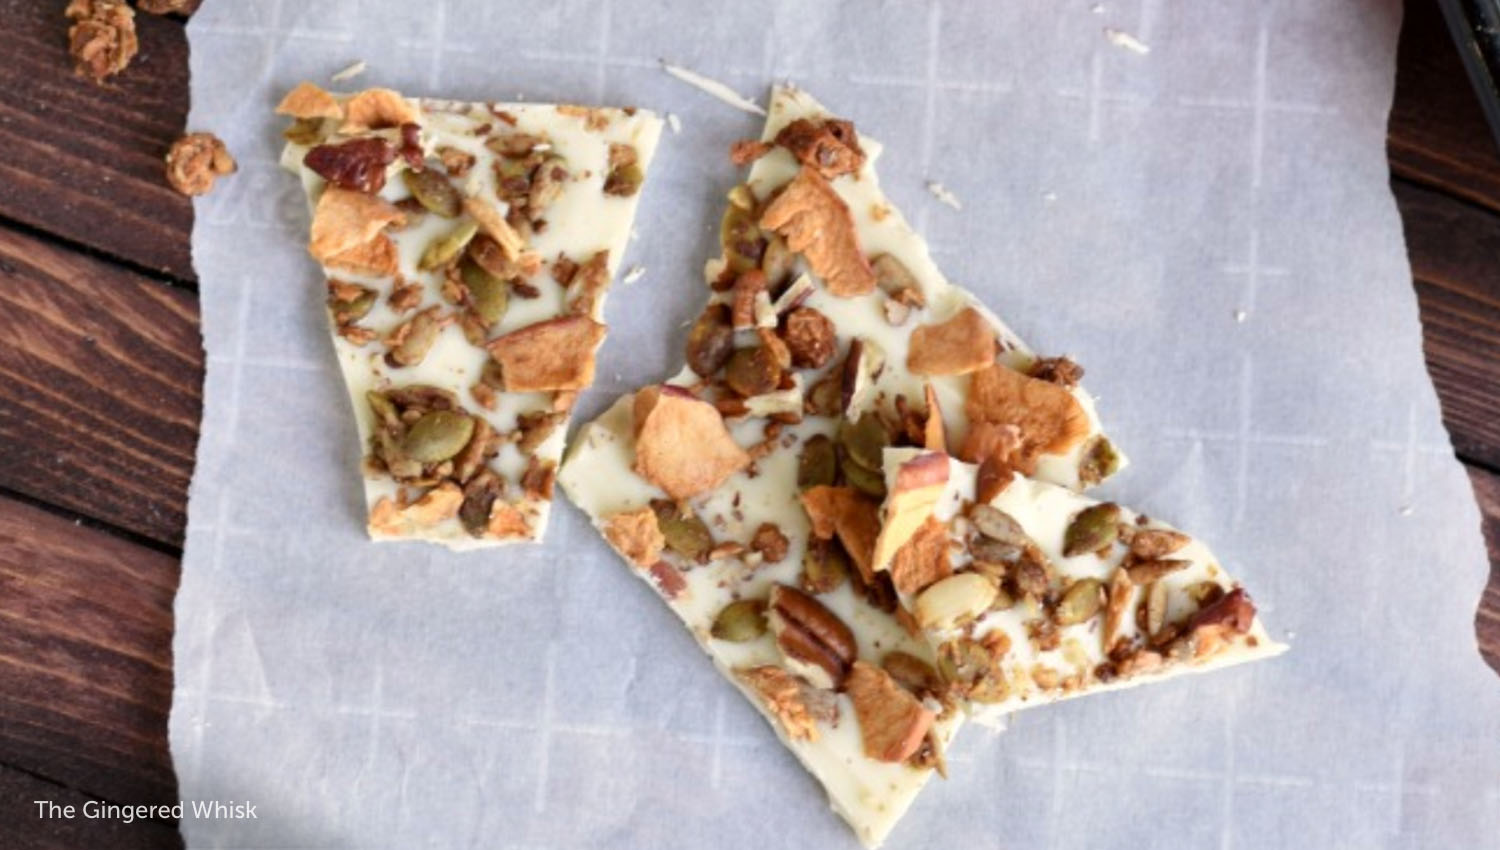 sb-50-thanksgiving-apple-cinnamon-granola-white-chocolate-bark